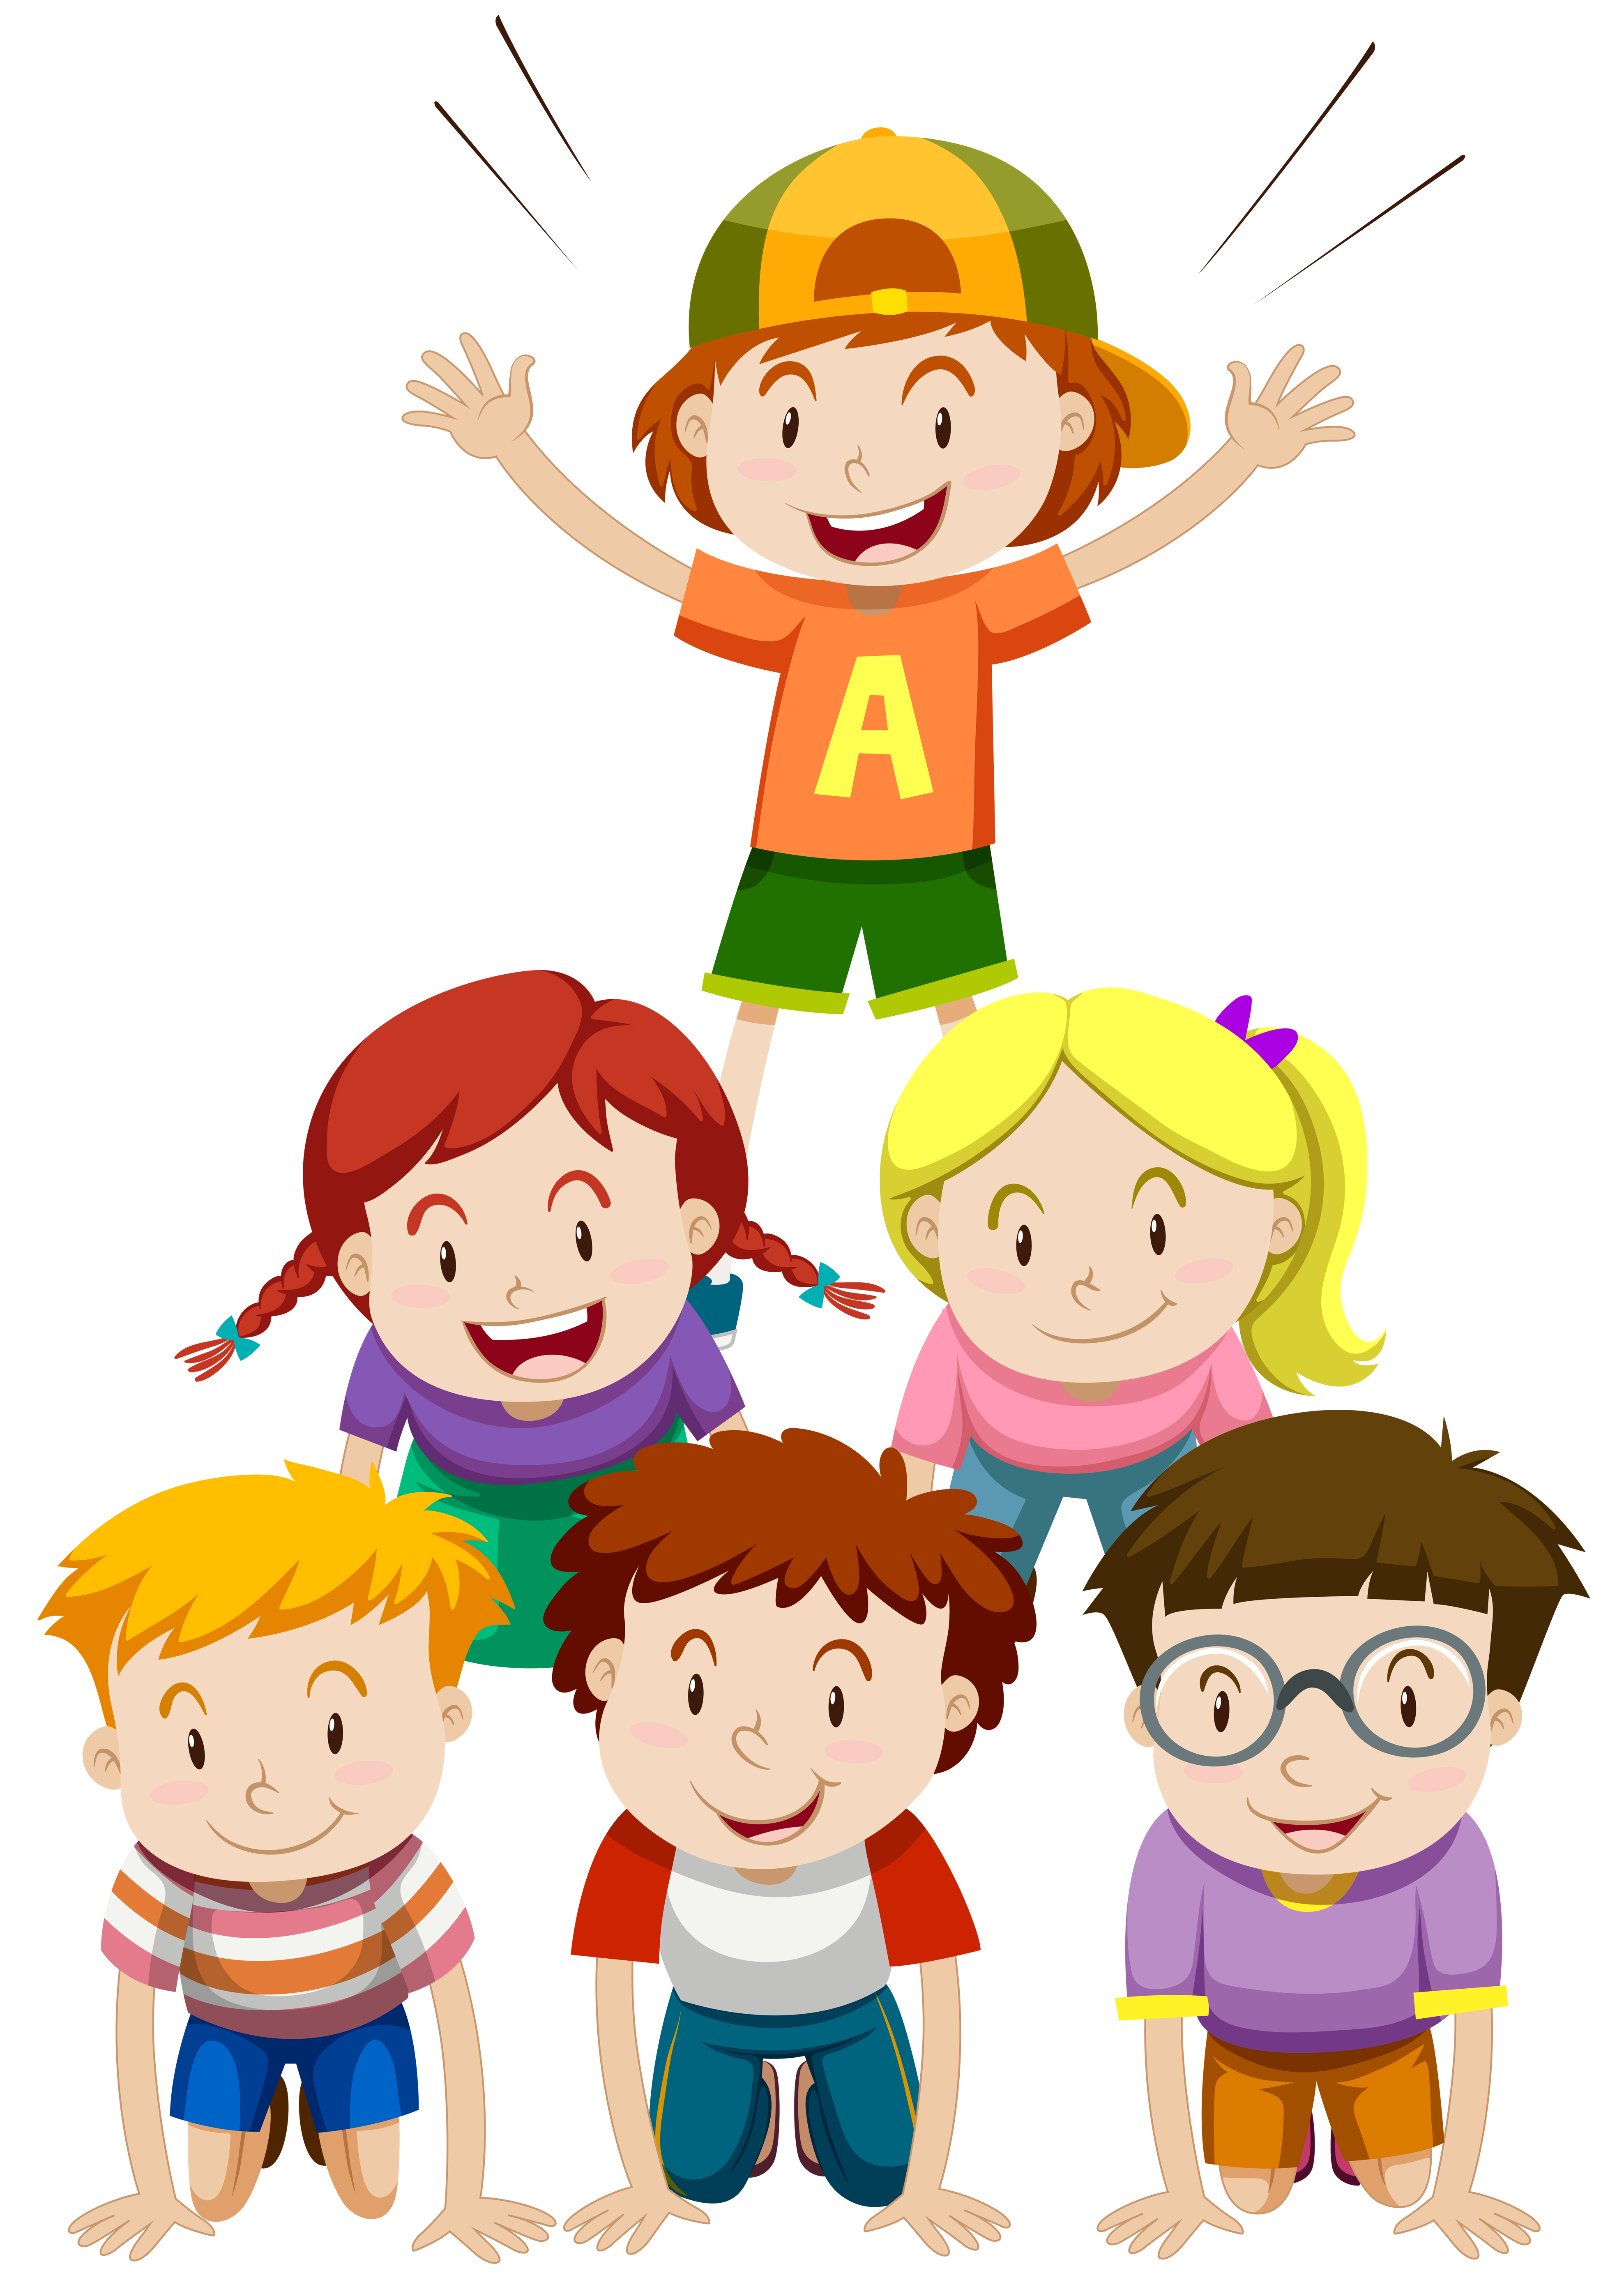 Children playing human pyramid - Download Free Vectors ...